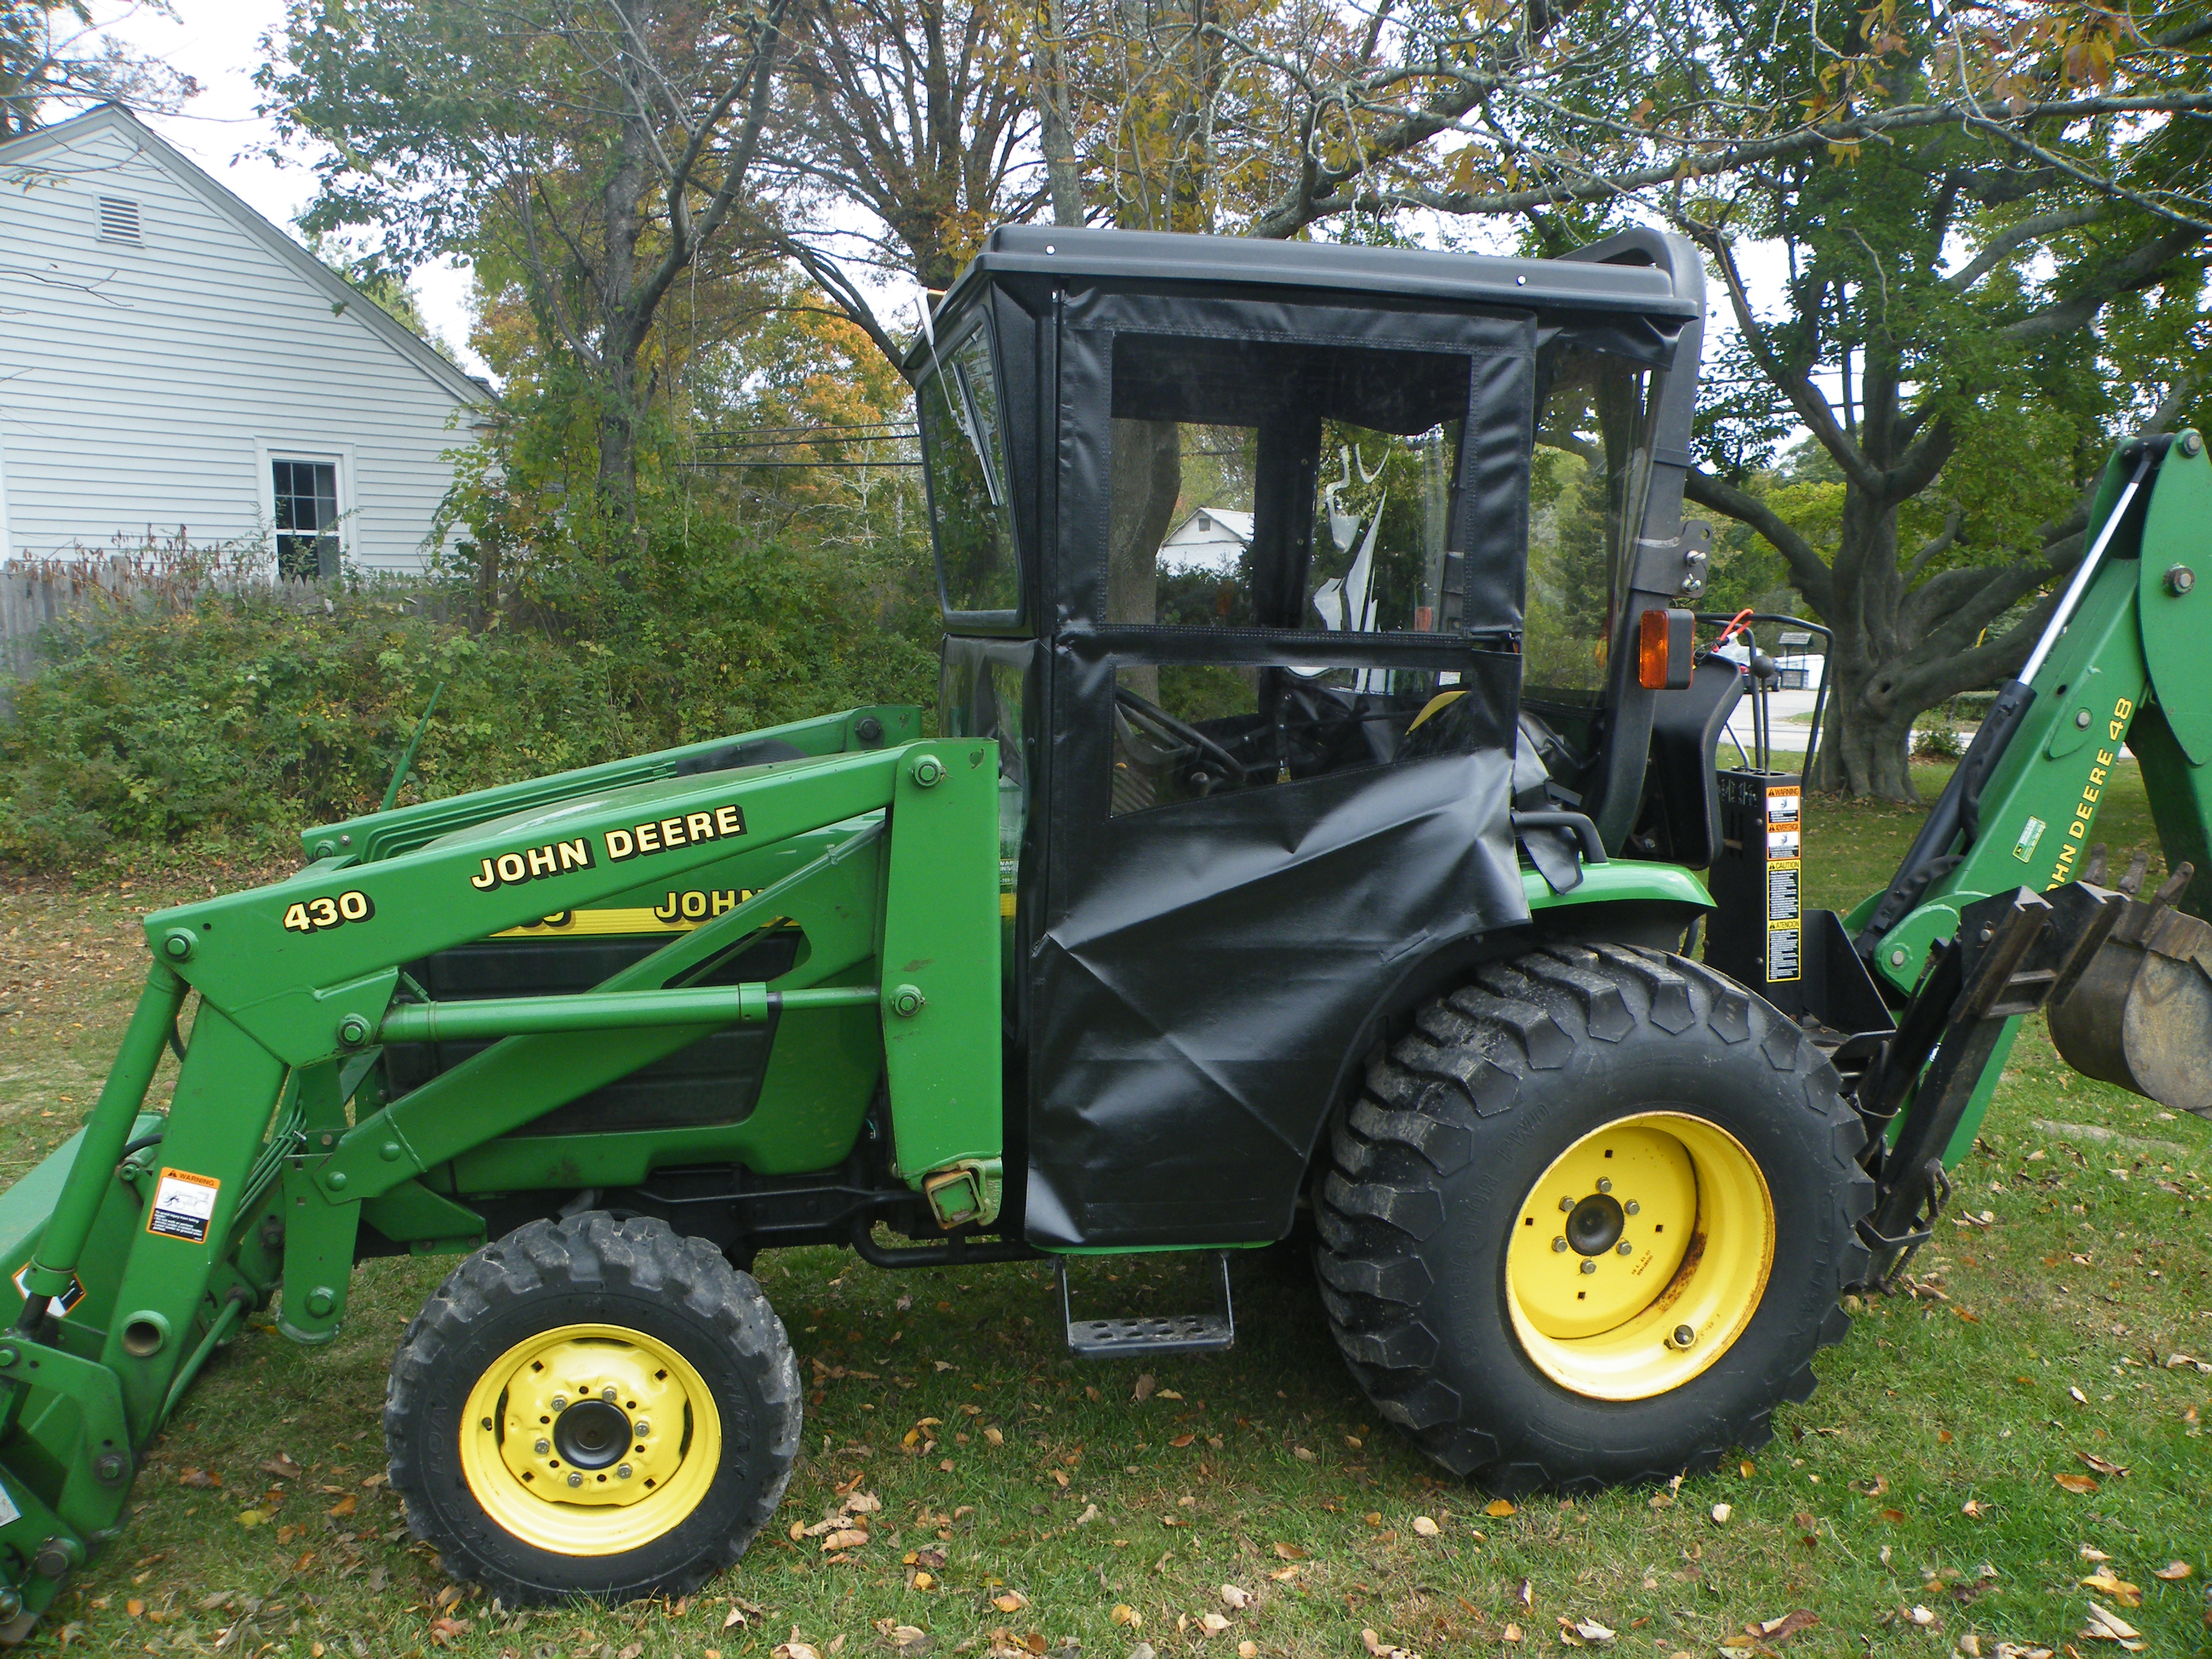 John Deere Lawn Tractor Enclosures : Hard top cab enclosure for compact utility